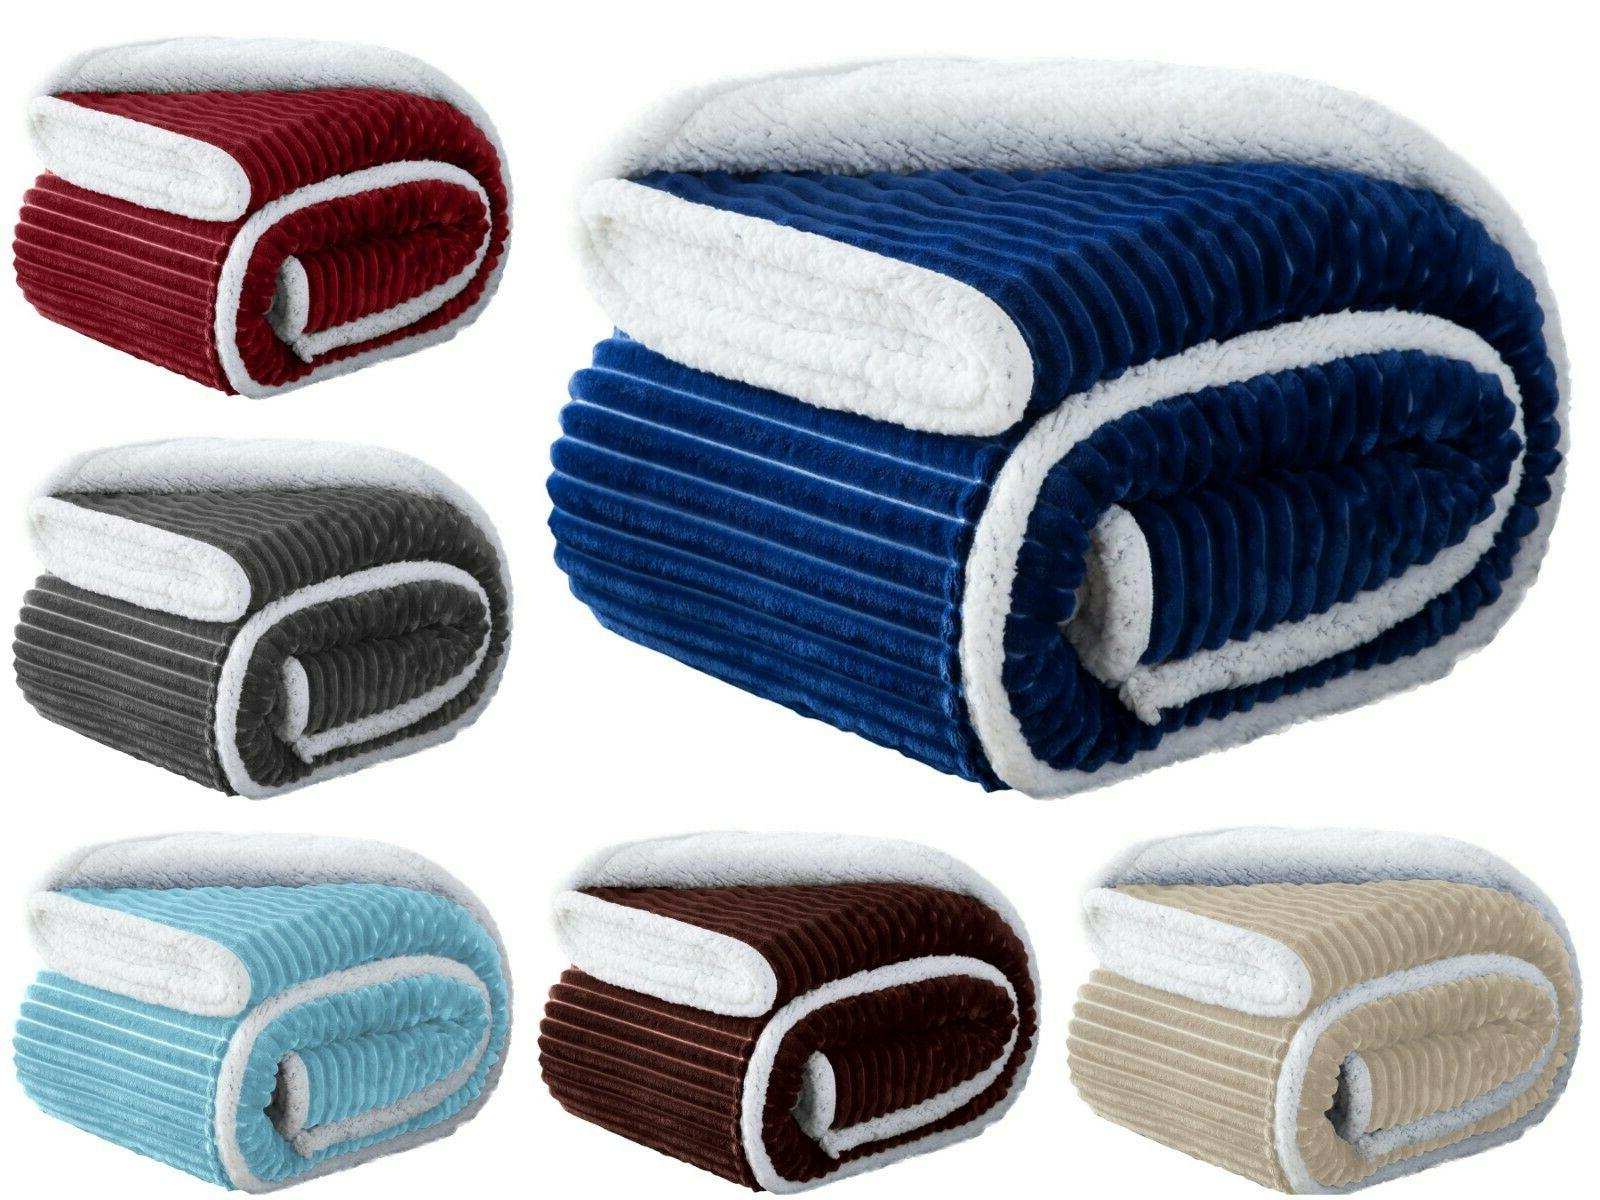 soft plush and fuzzy throw sherpa lined